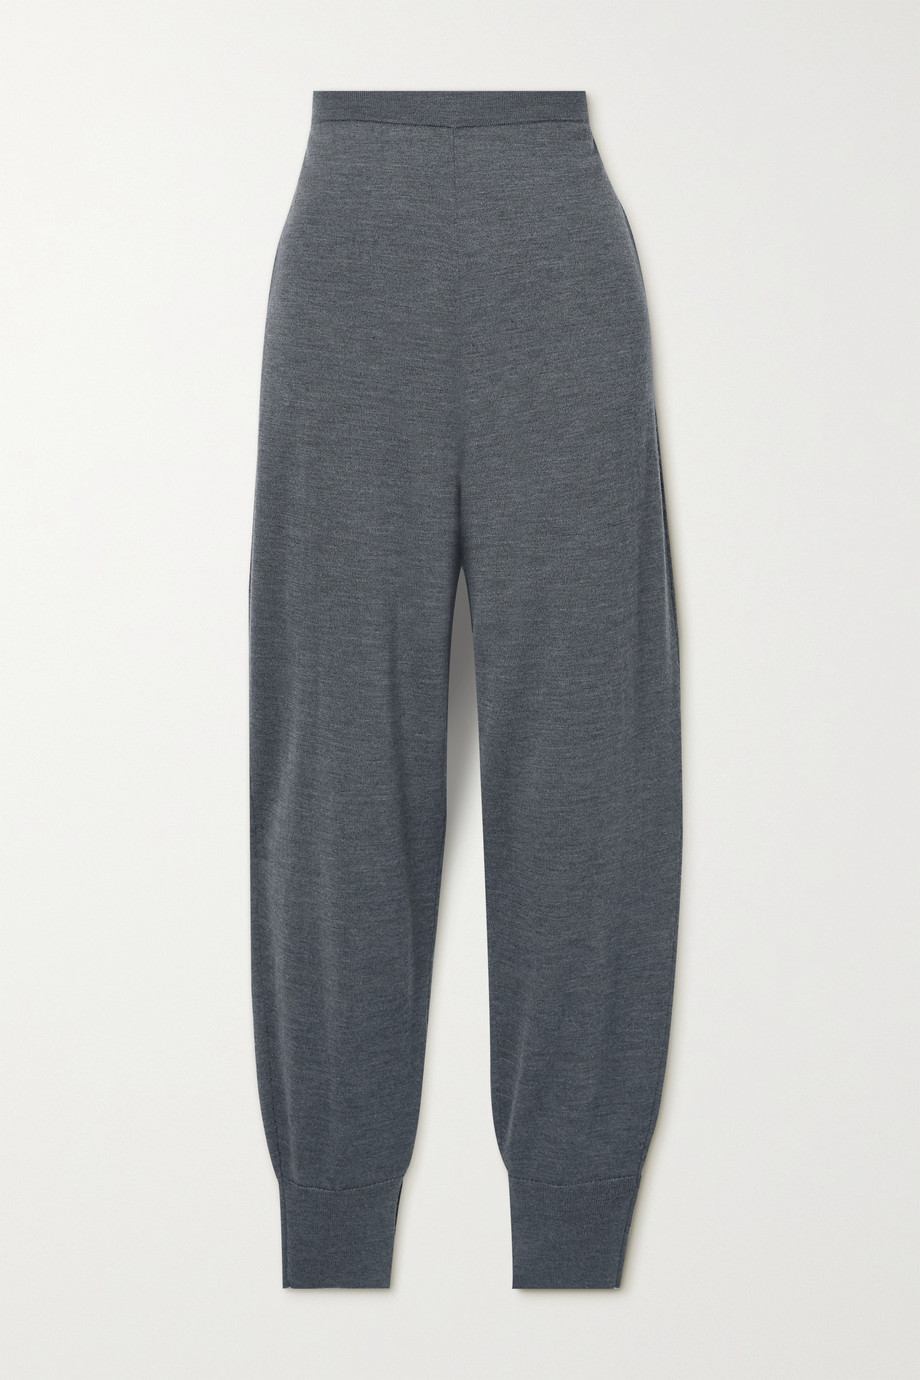 THEORY Merino wool track pants